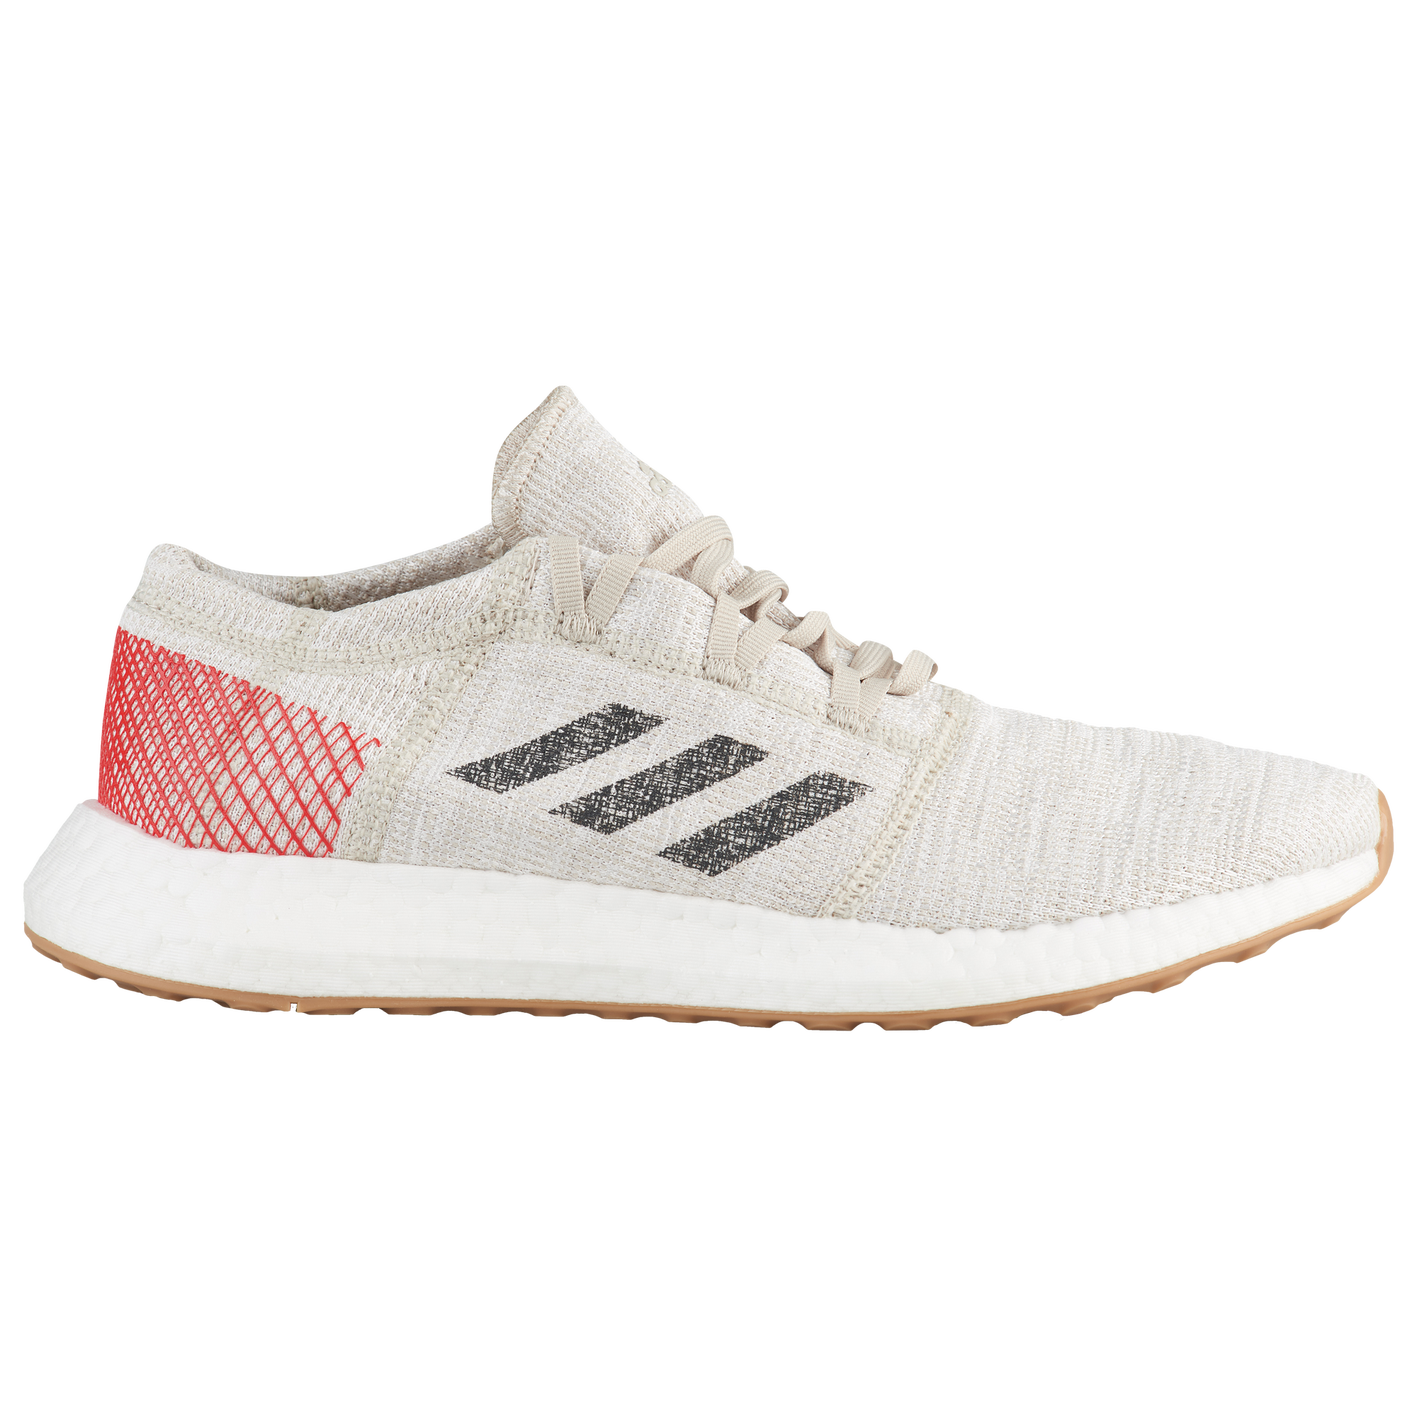 a87089df3 adidas Pureboost Go - Men s.  79.99 -  120.00. Product    B37805. Selected  Style  Clear Brown Carbon Active Red ...